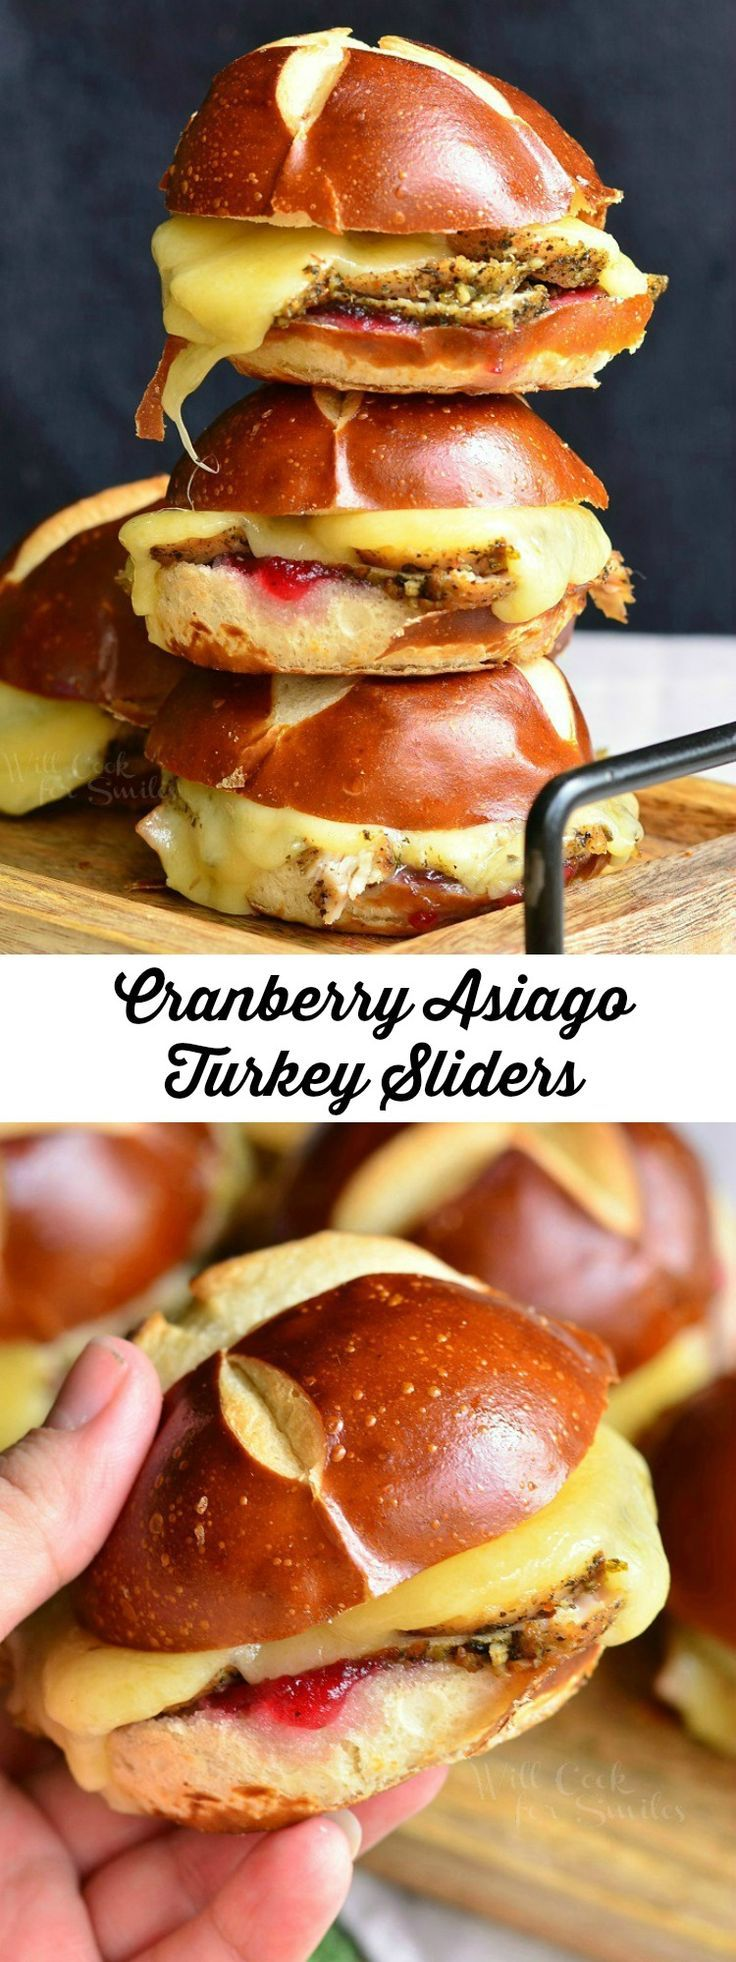 Cranberry Asiago Turkey Sliders | from willcookforsmiles.com